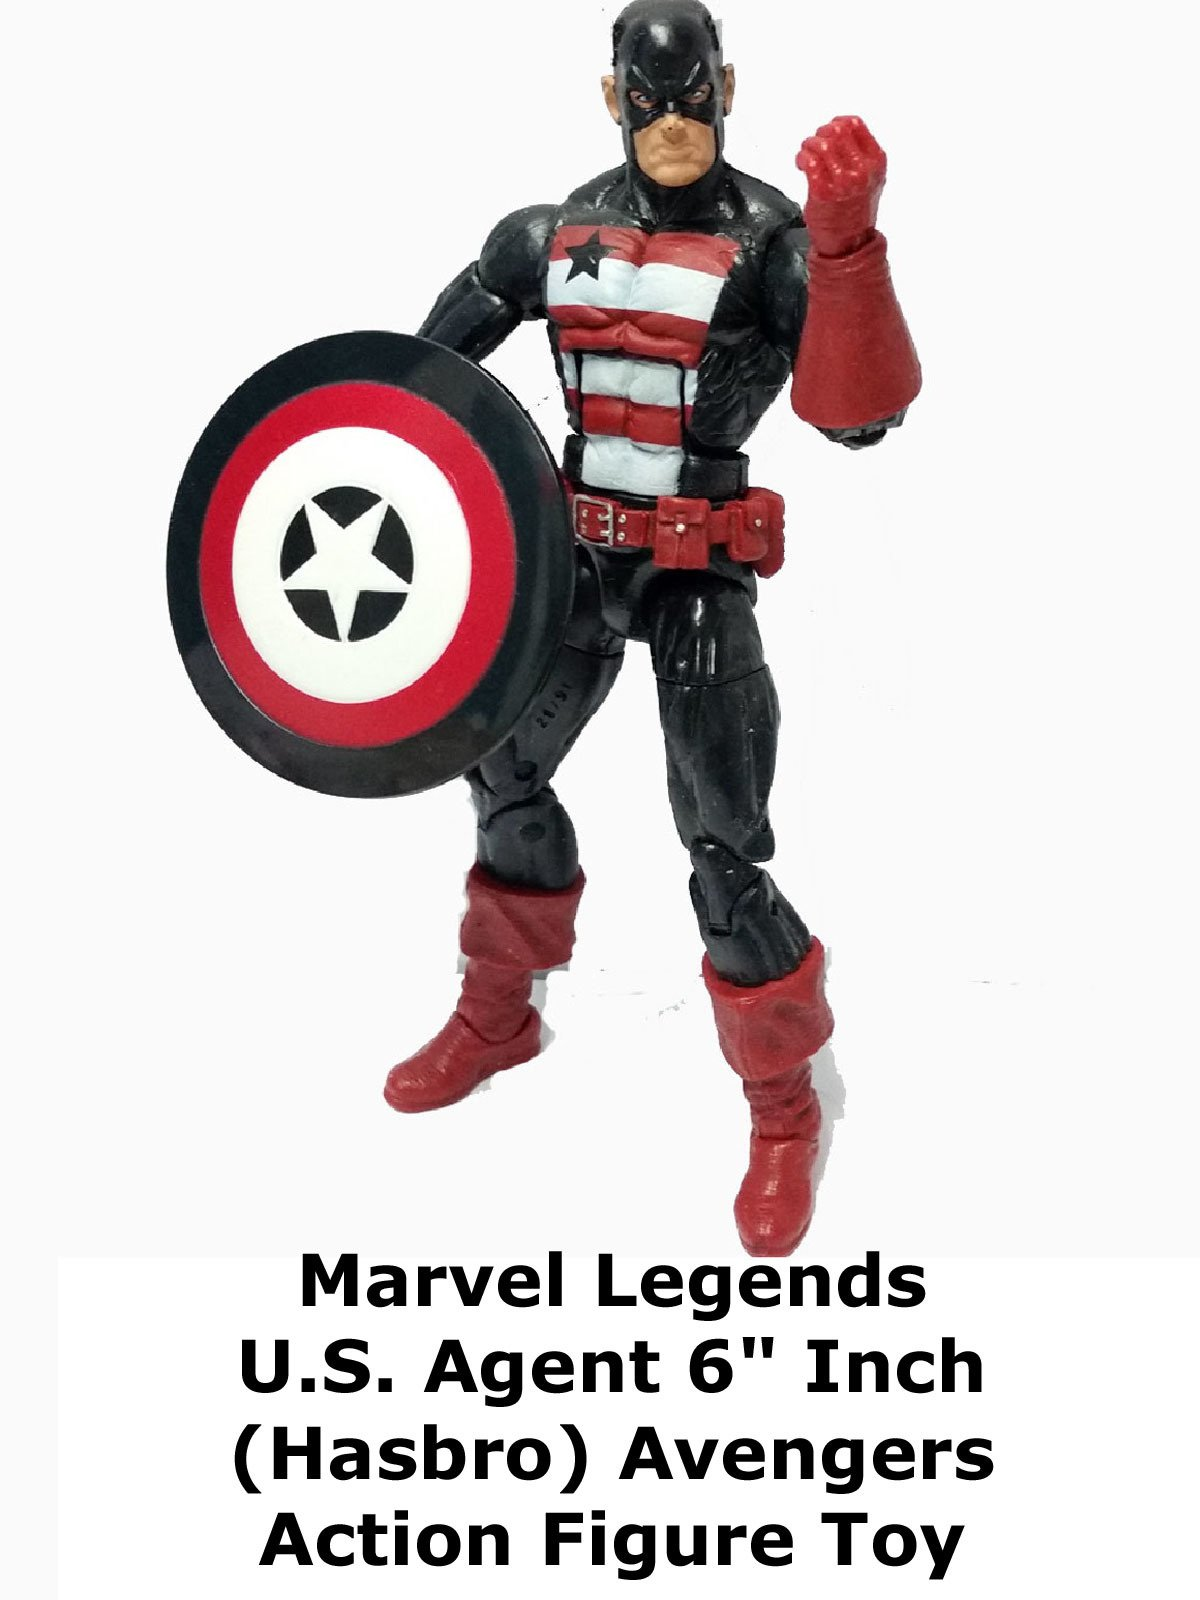 "Review: Marvel Legends U.S. Agent 6"" Inch (Hasbro) Avengers Action Figure Toy on Amazon Prime Video UK"